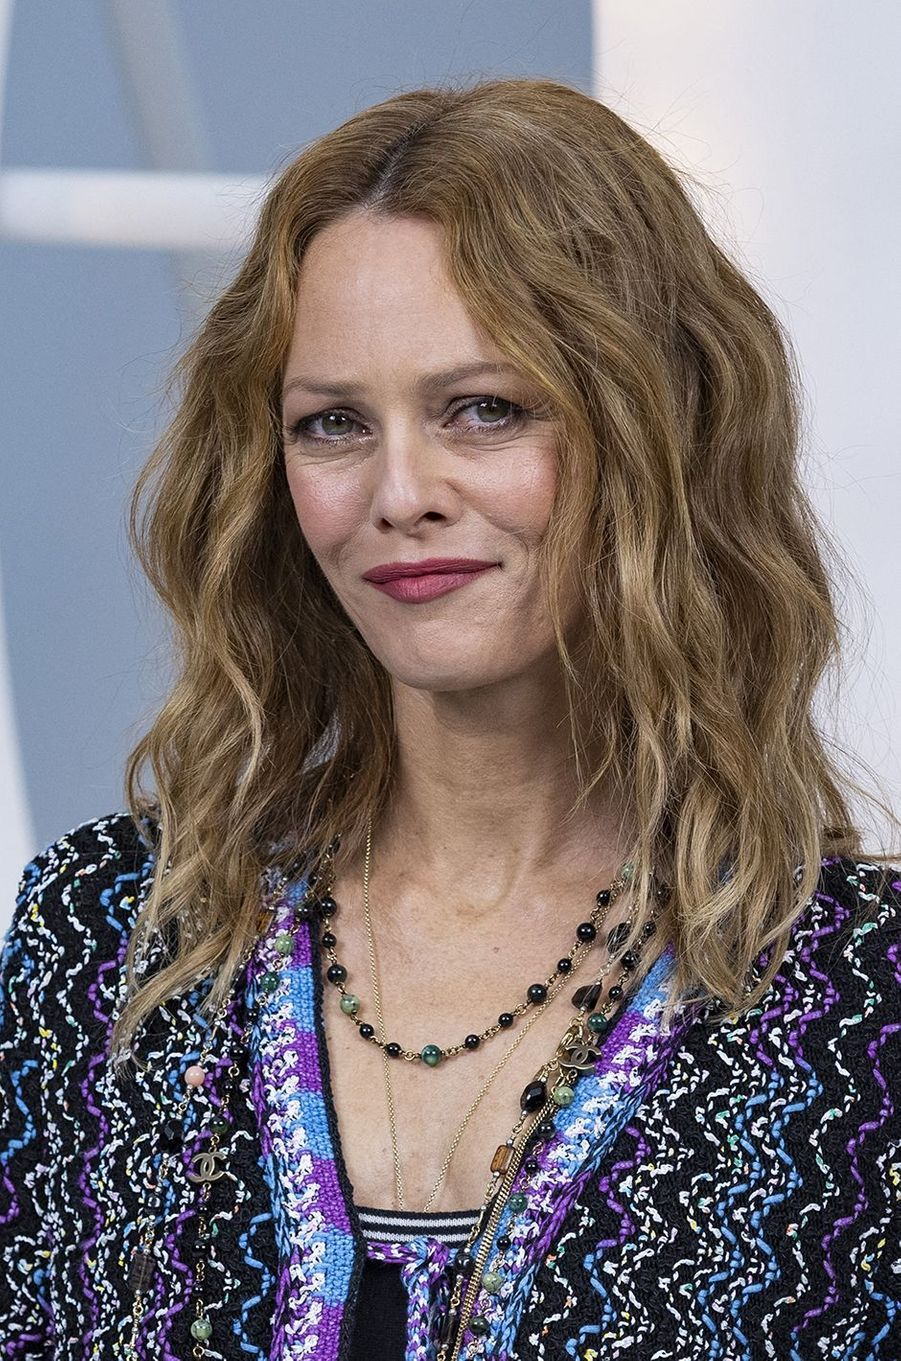 Vanessa Paradis au défilé Chanel lors de la Fashion Week à Paris le 6 octobre 2020